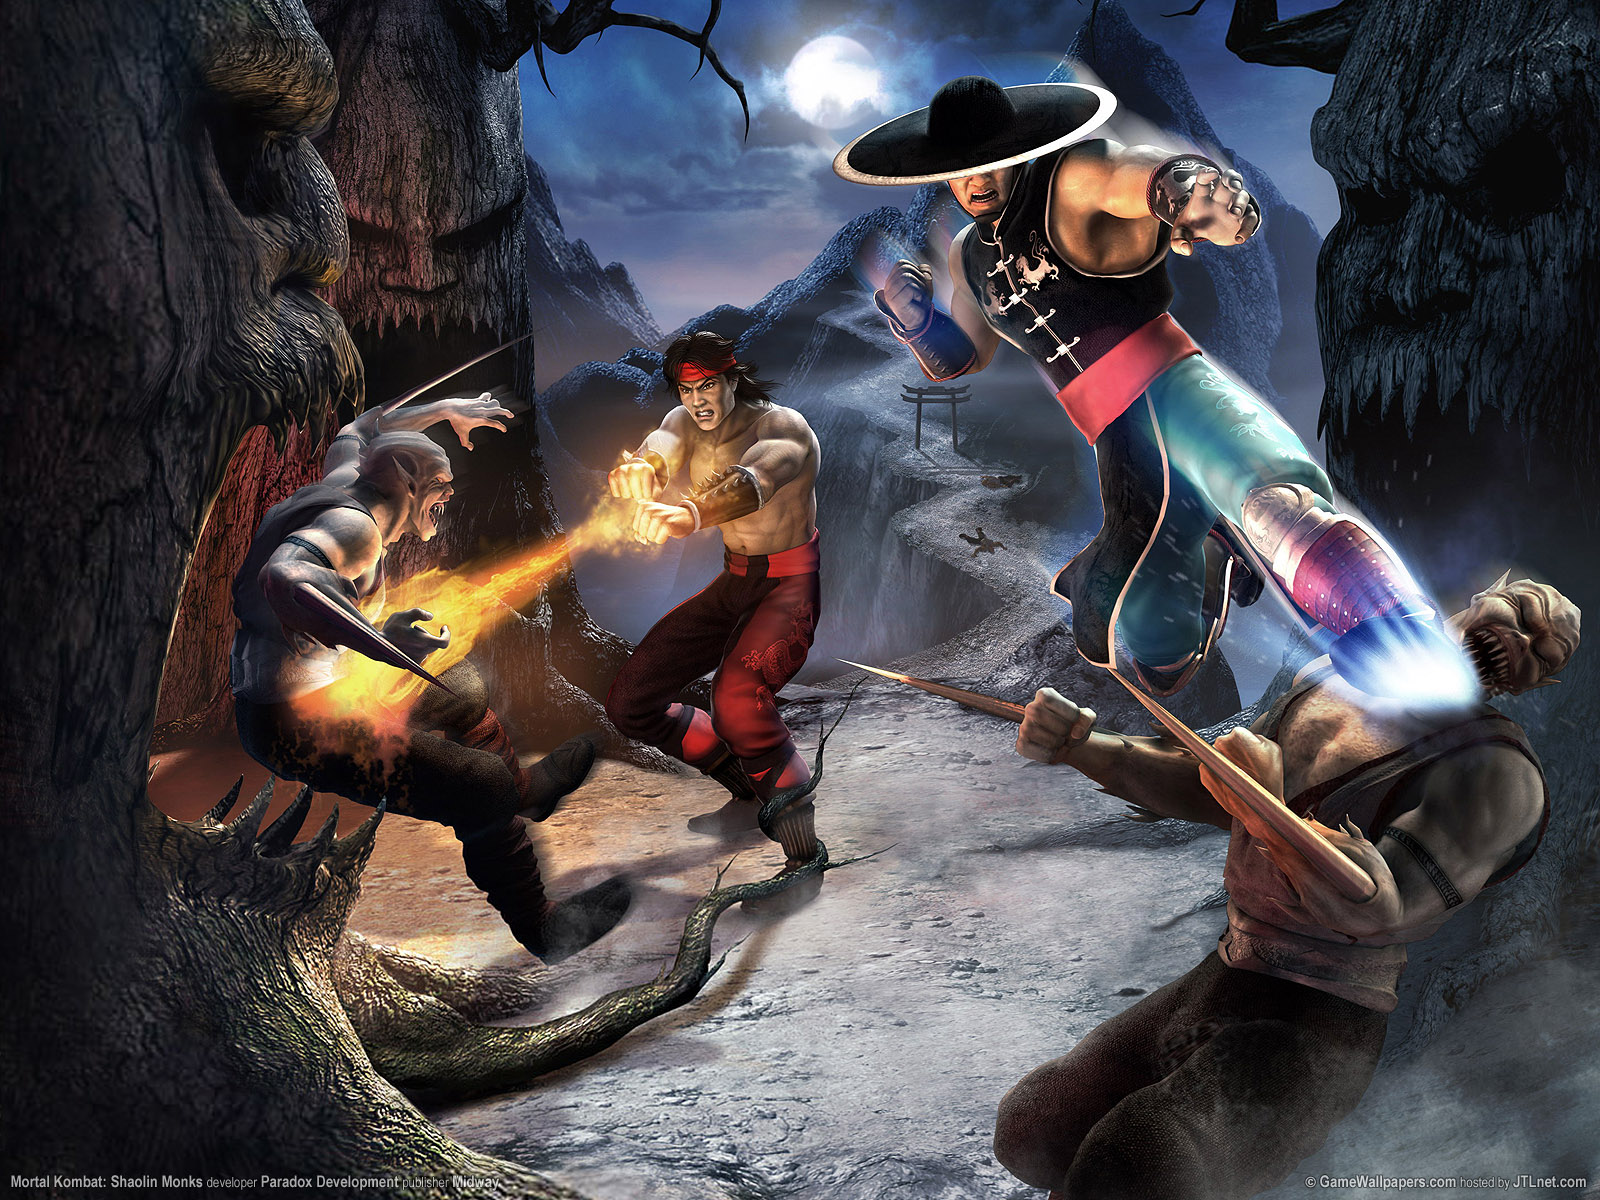 Mortal Kombat: Shaolin Monks full game free pc, download